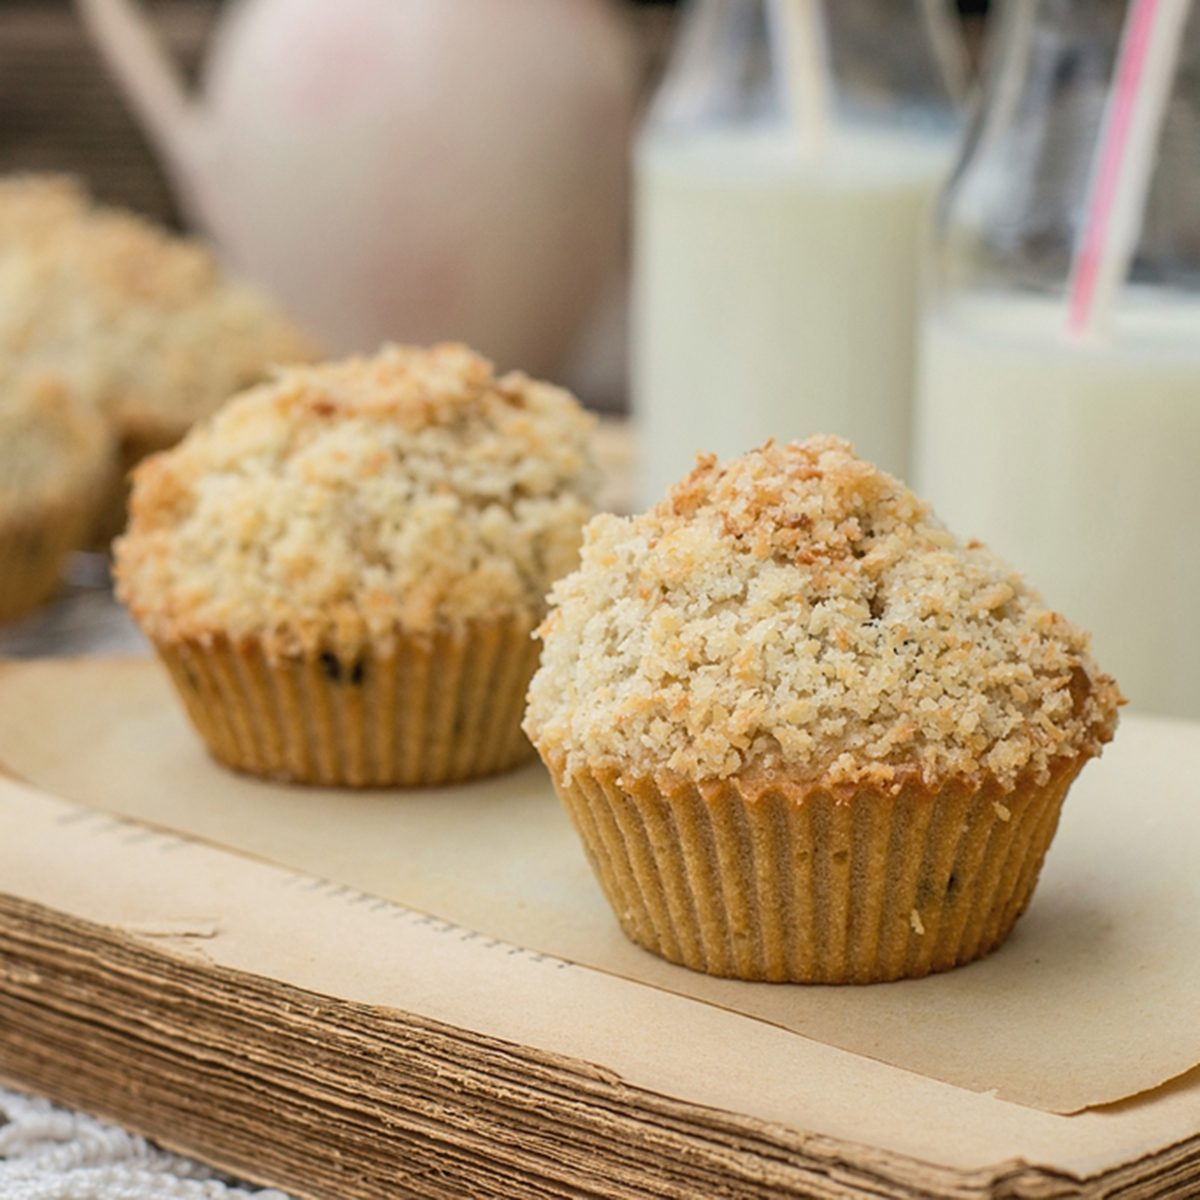 Chocolate chip muffins with coconut streusel on top. Vignetting and rustic style; Shutterstock ID 240410410; Job (TFH, TOH, RD, BNB, CWM, CM): TOH